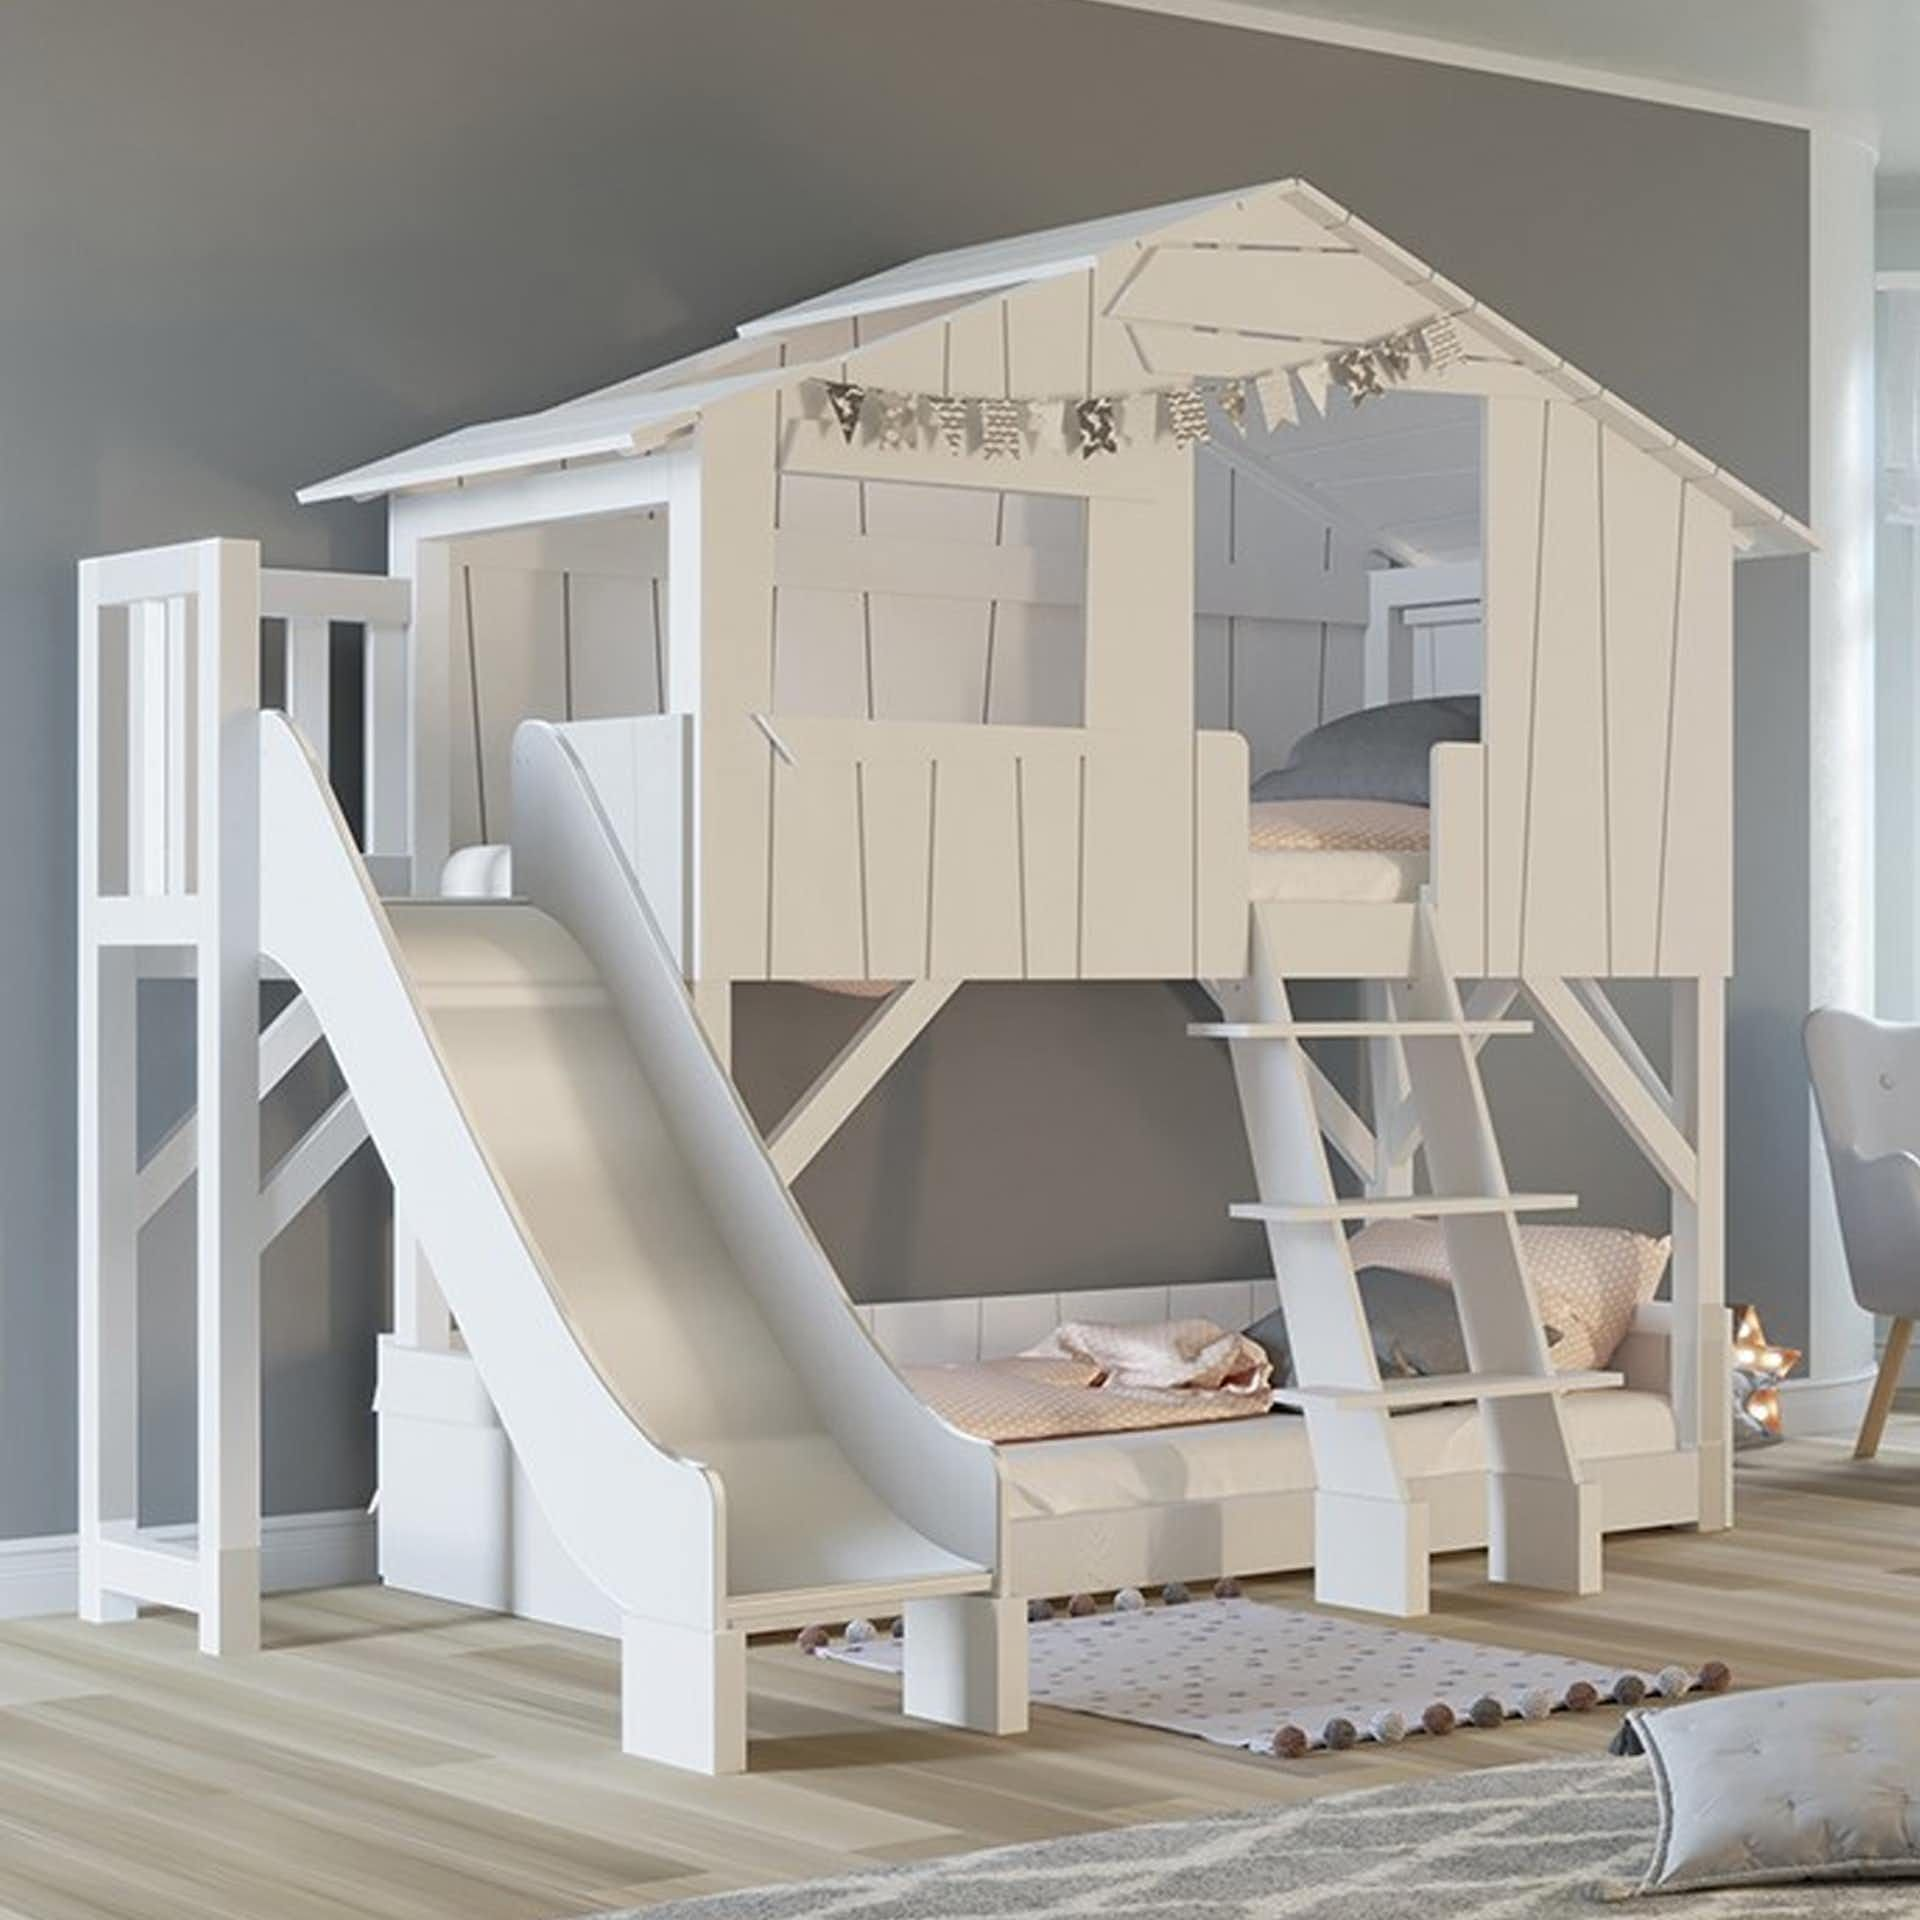 I want one for me!! bunkbed designinspo